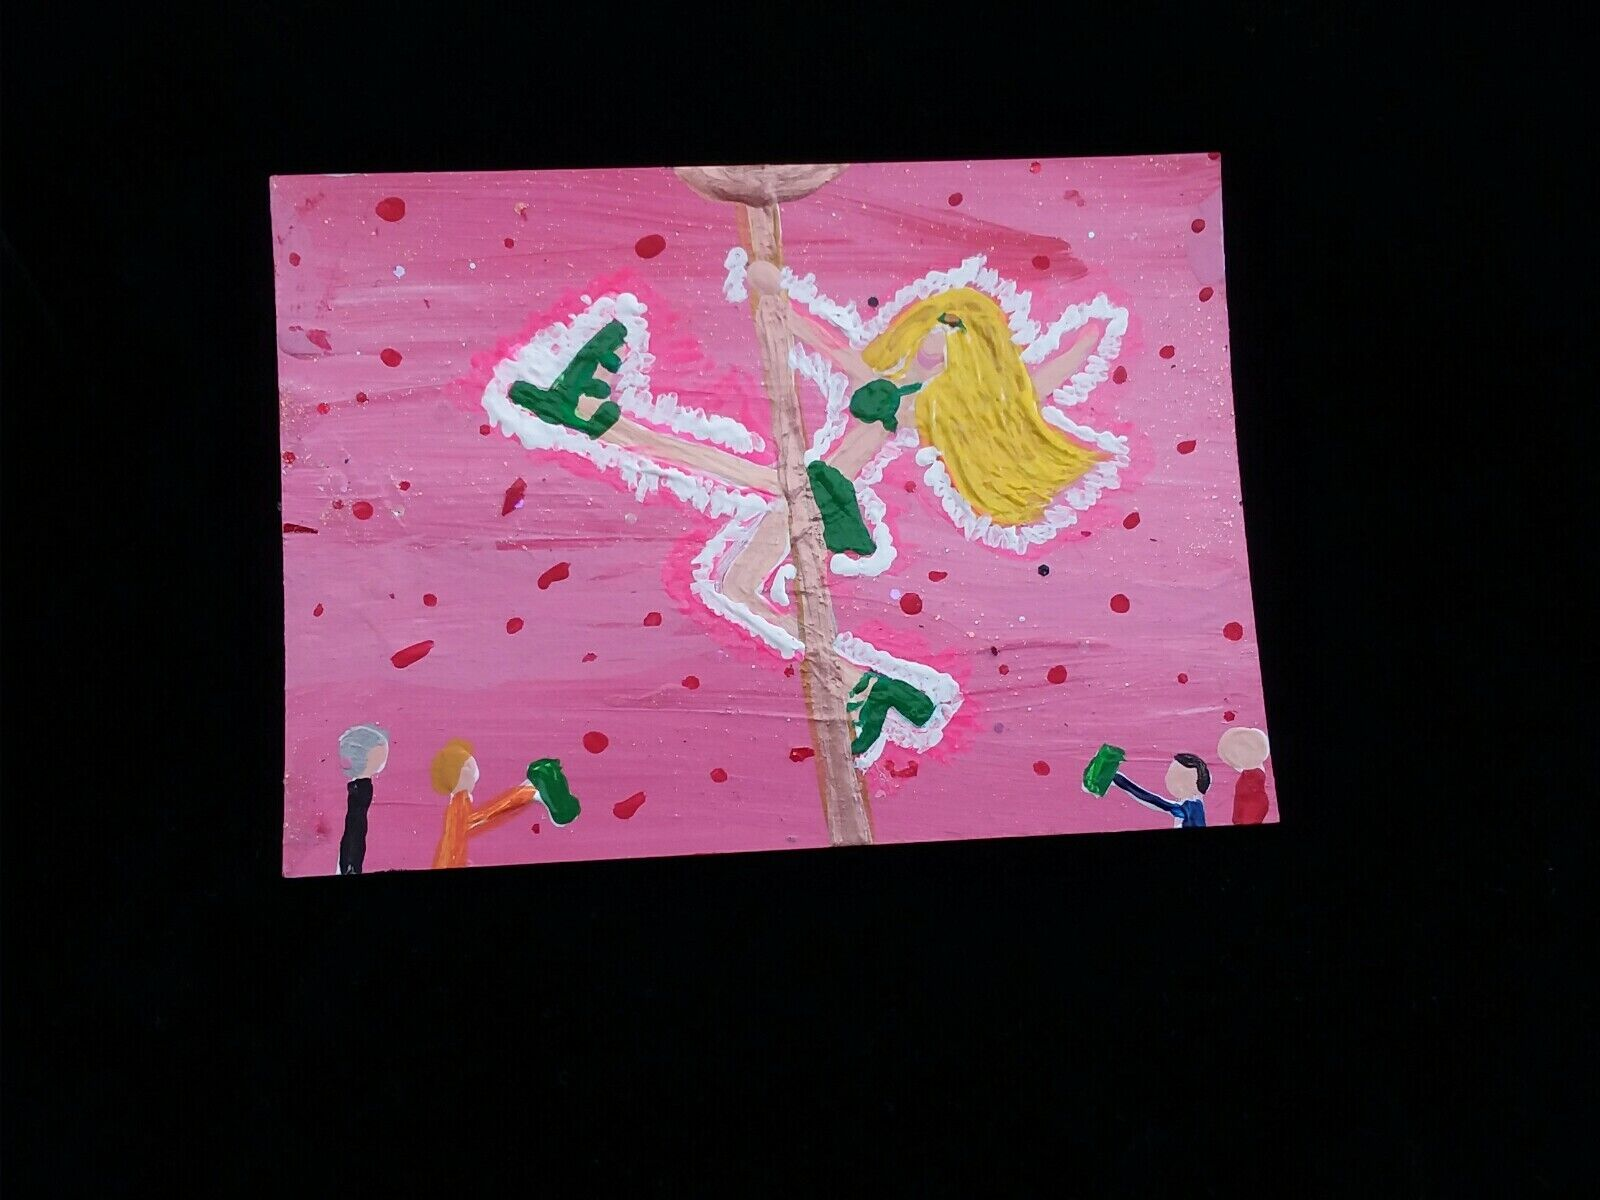 Painting TINA Original ART TRADING CARD ACEO Signed DANCER STRIPPER POLE WOMAN - $12.27